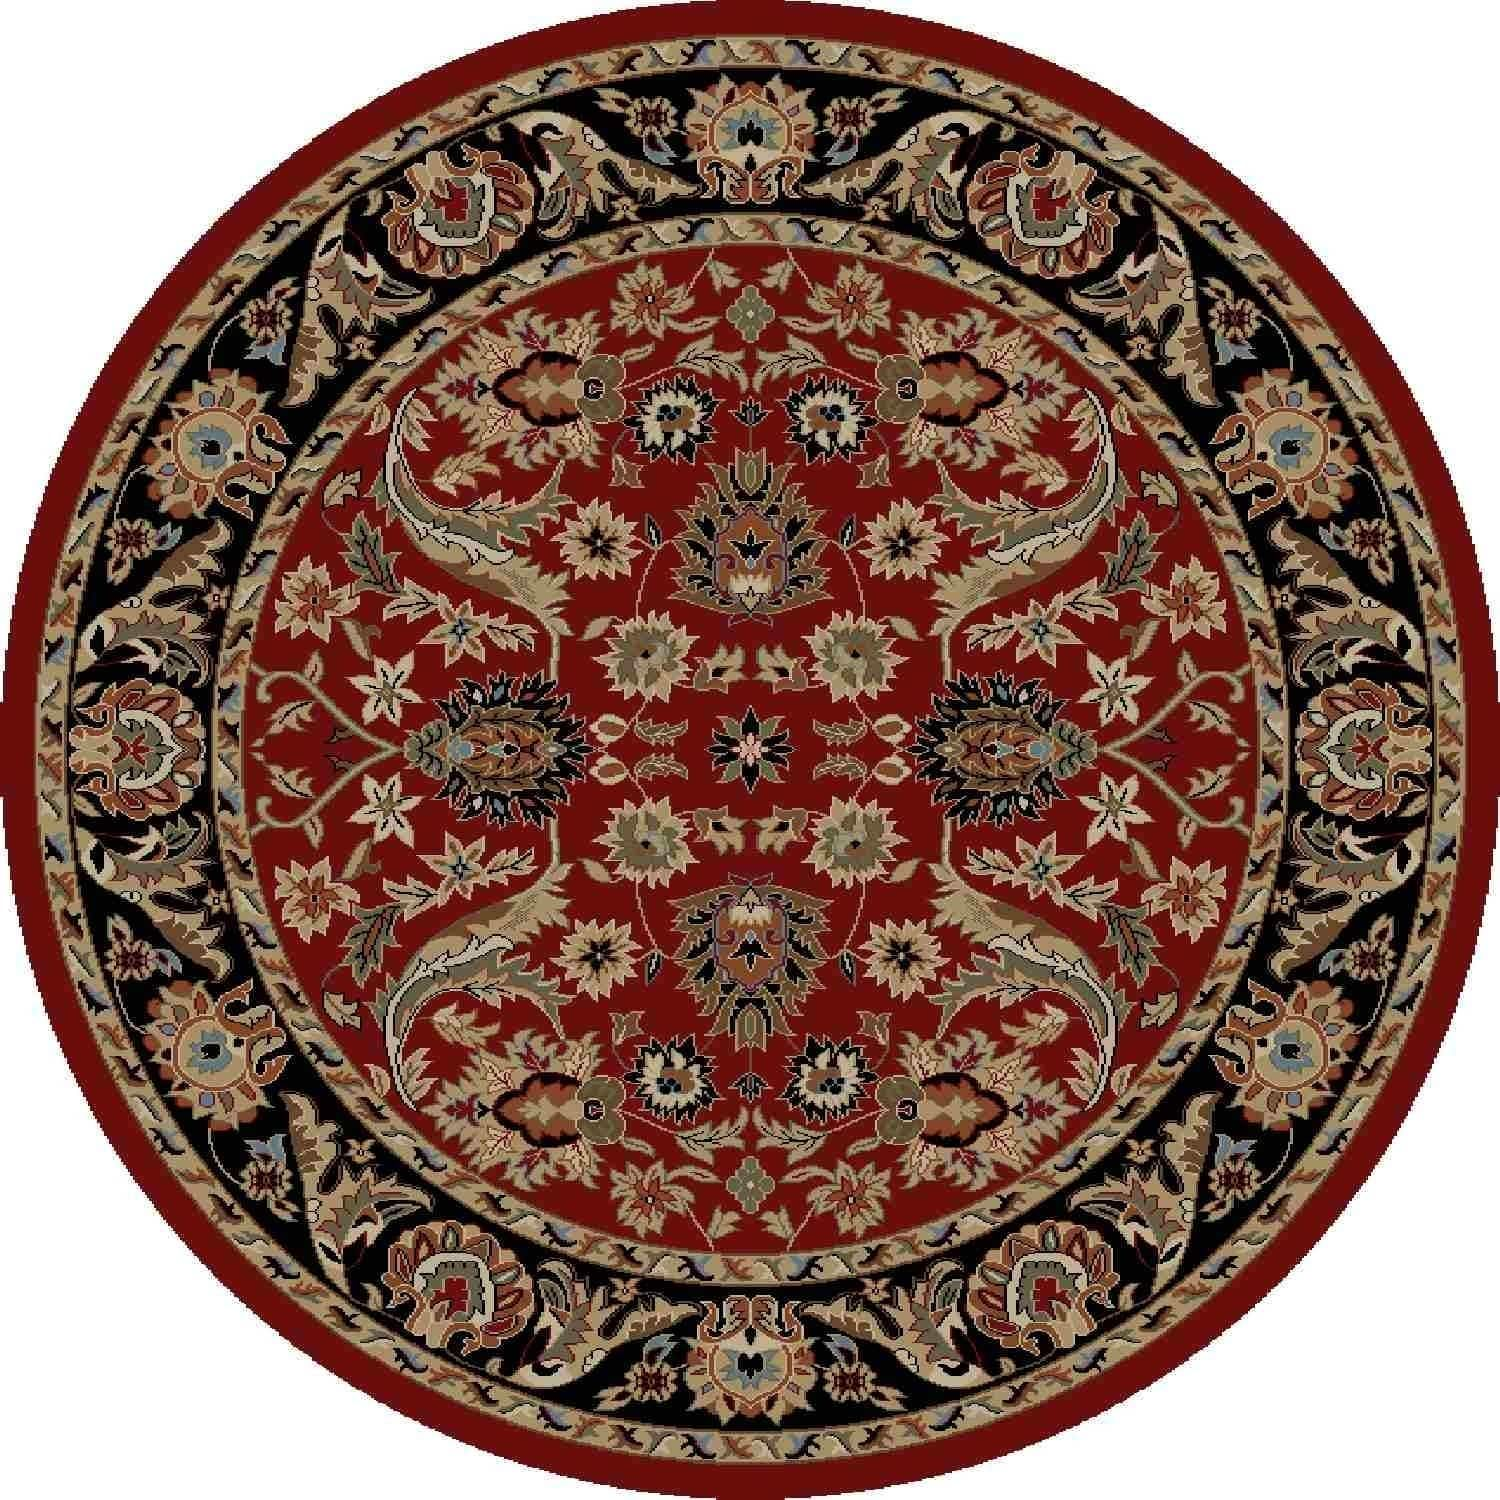 Concord Global Ankara Royals Red Round Rug 5 3 X 5 3 Round